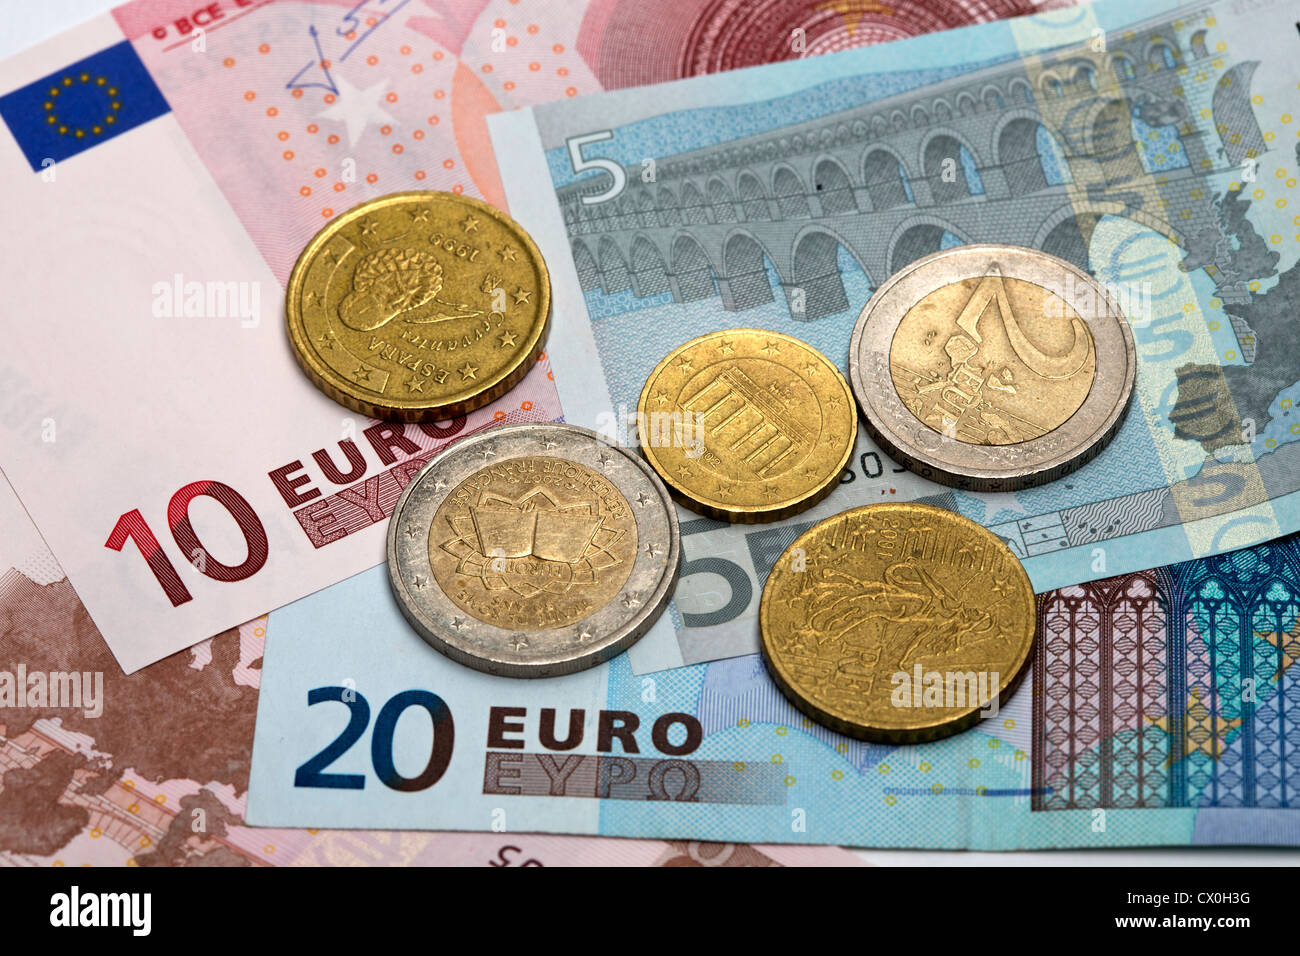 Euro Bank notes and  coins - Stock Image